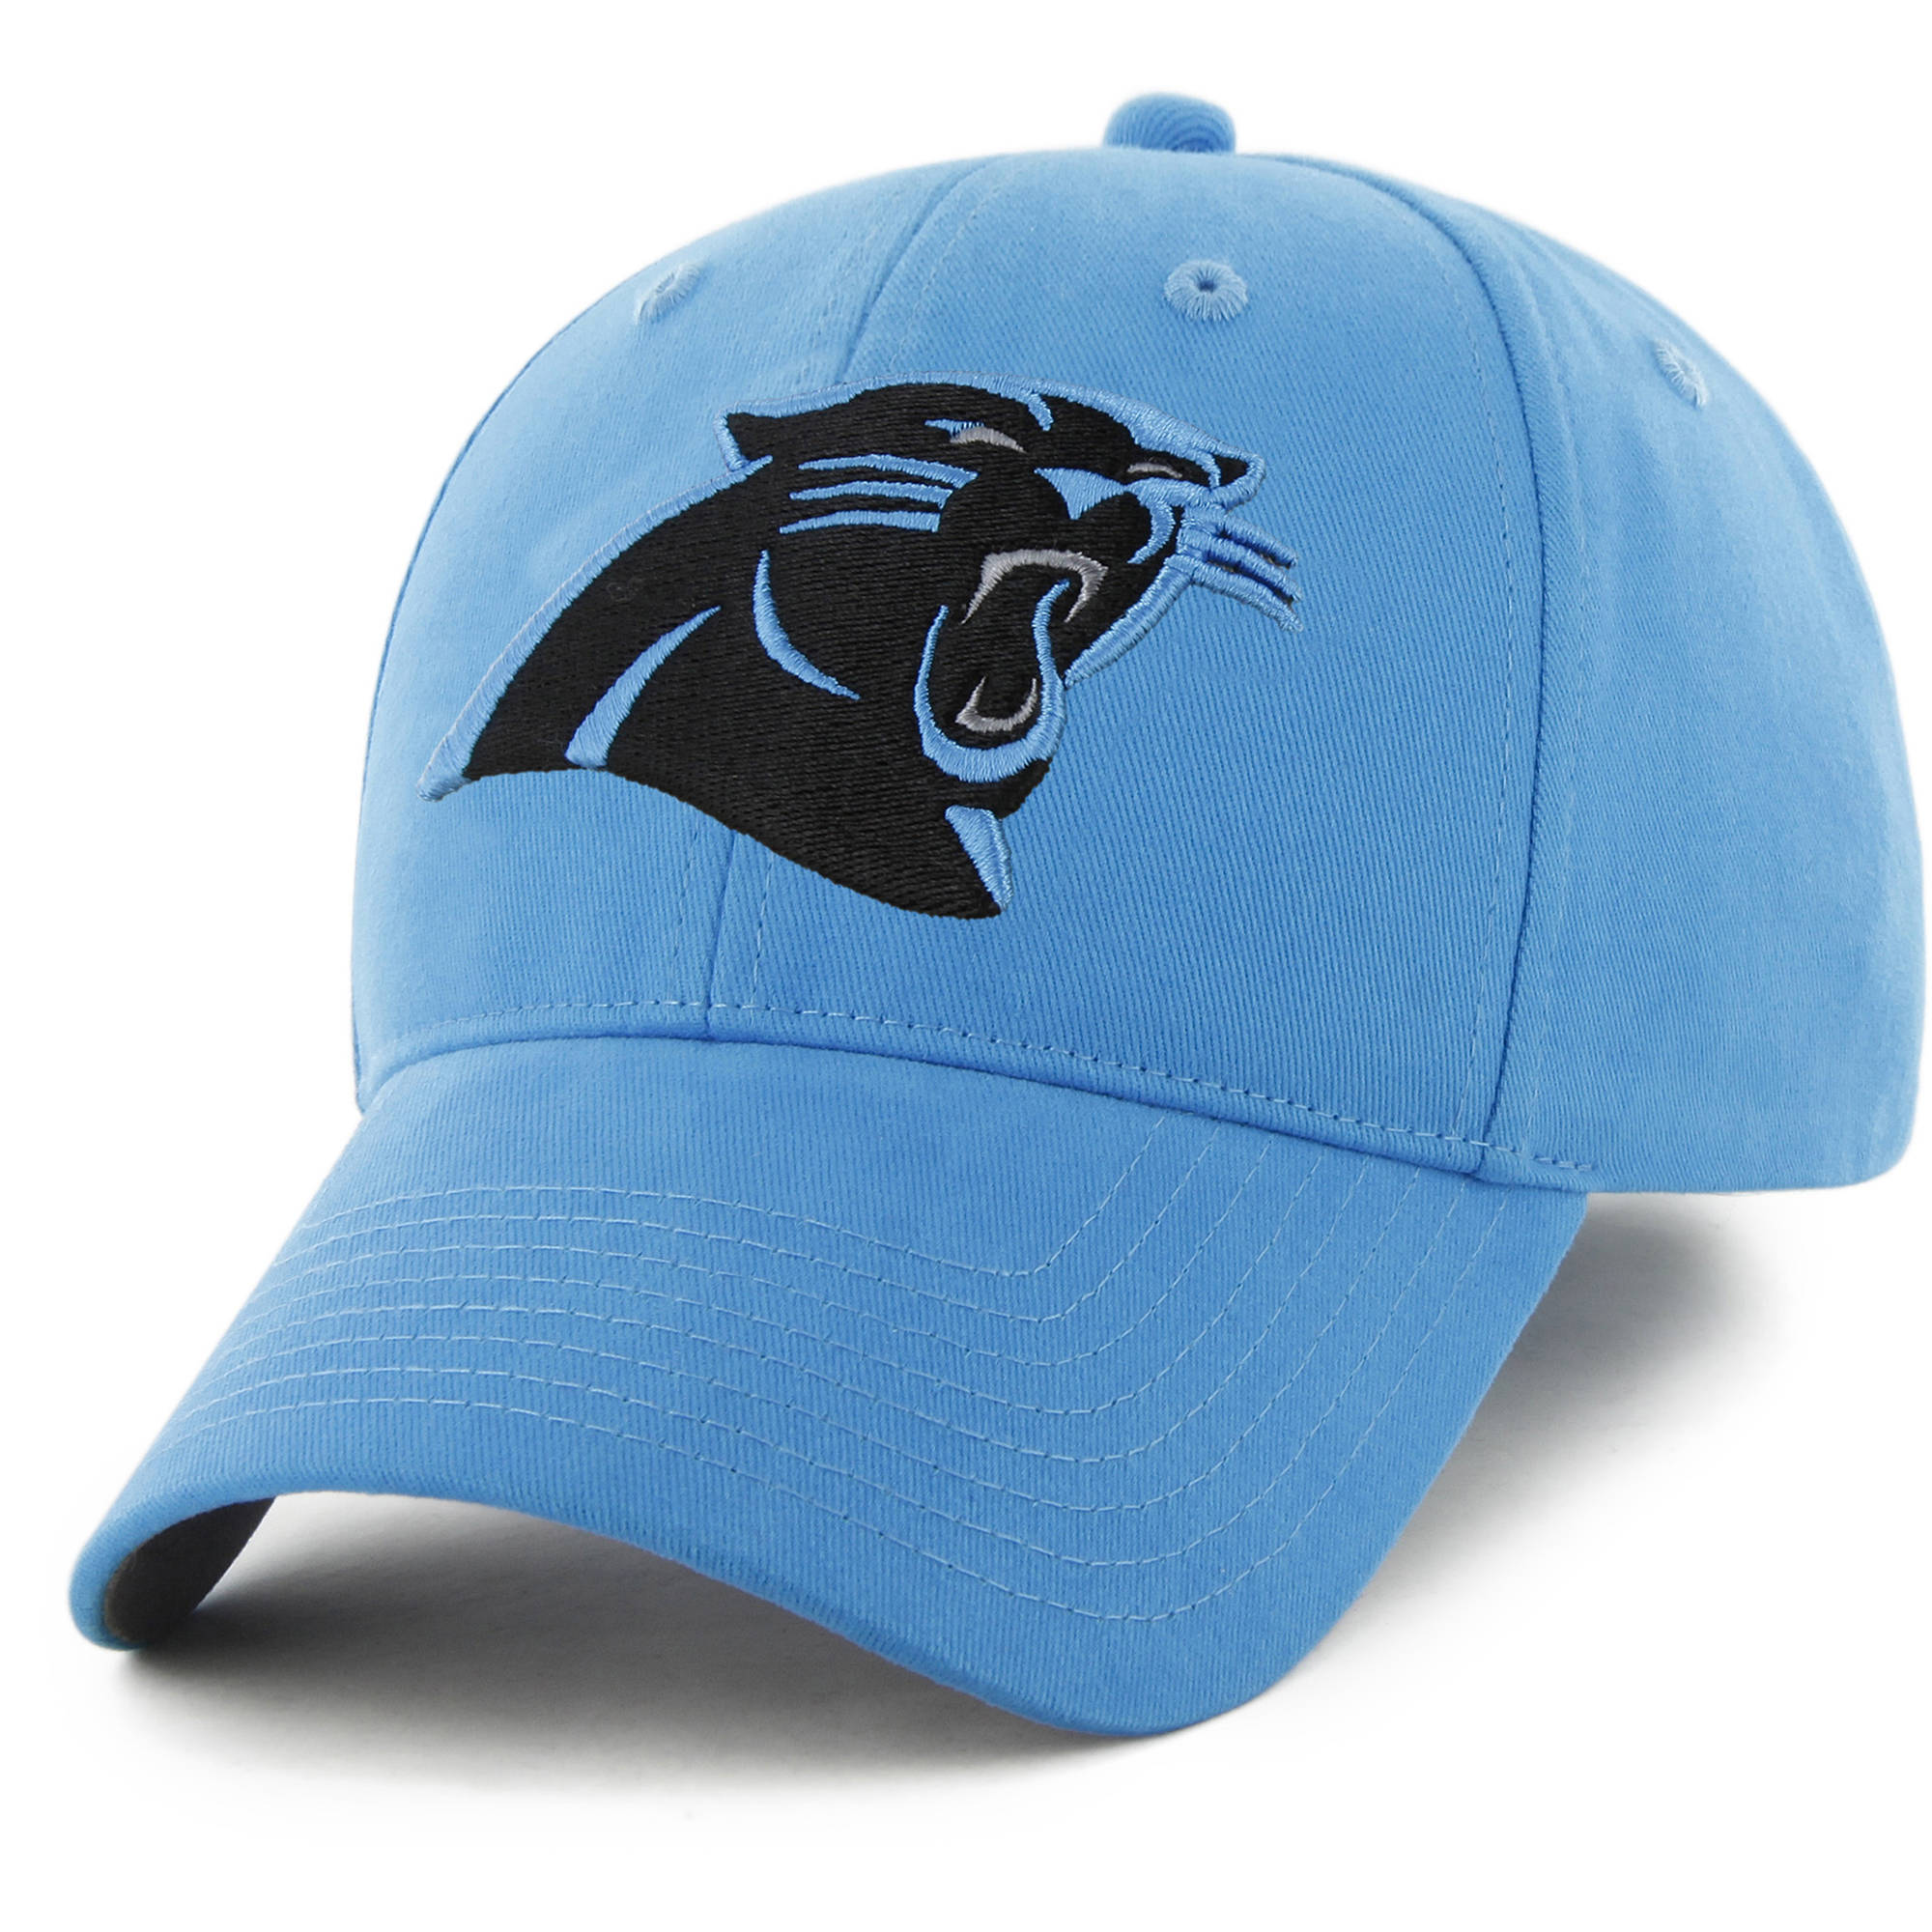 NFL Carolina Panthers Basic Cap / Hat by Fan Favorite